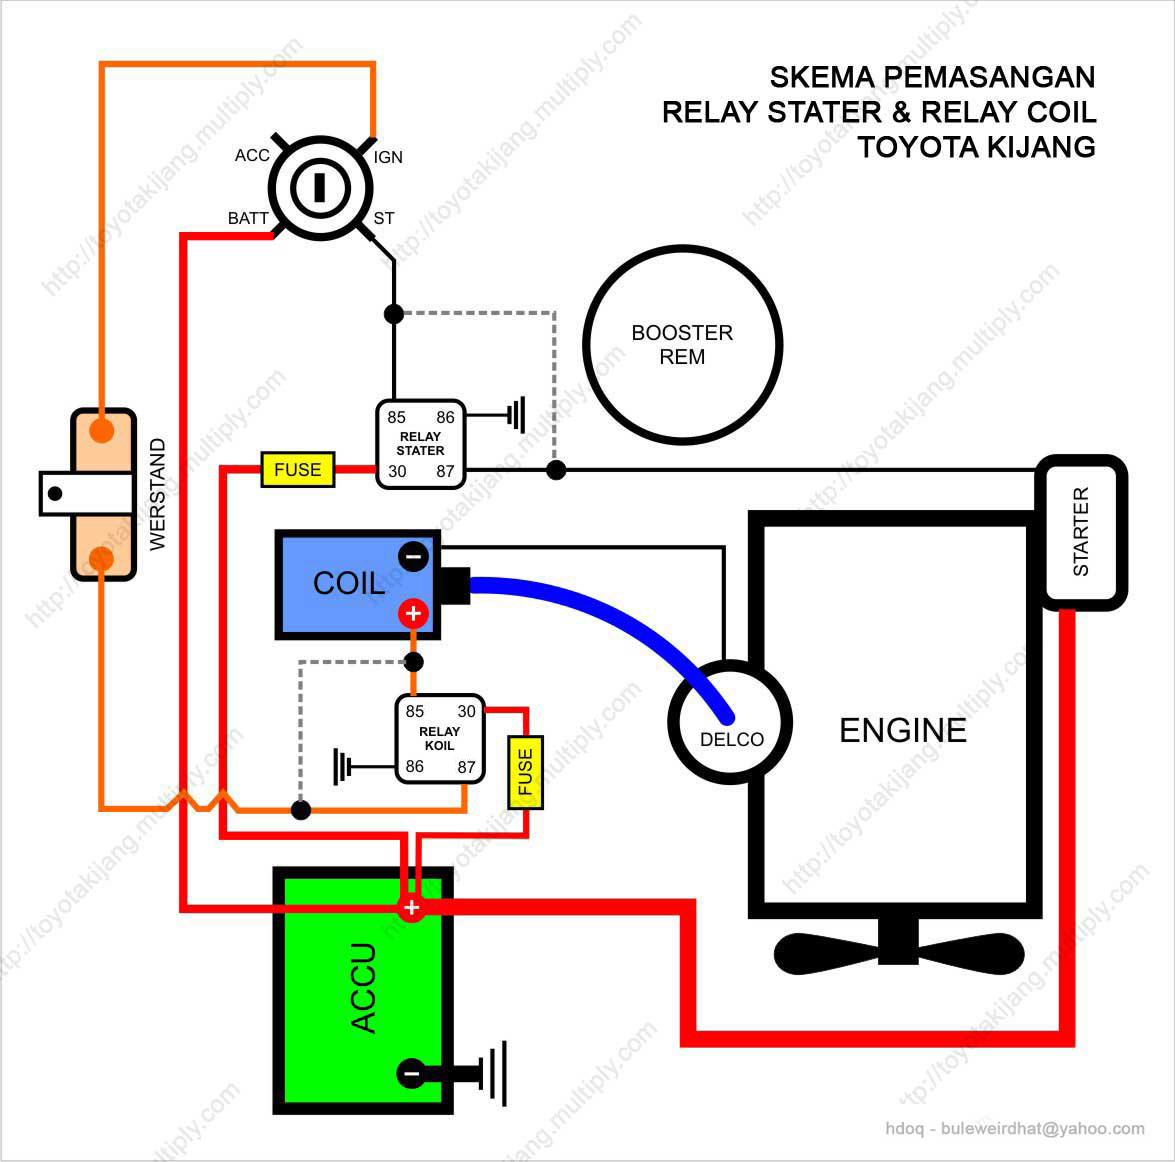 small resolution of wiring diagram toyota kijang 7k efi wiring library rh 88 webseiten archiv de harga mobil bekas toyota kijang super toyota kijang 1996